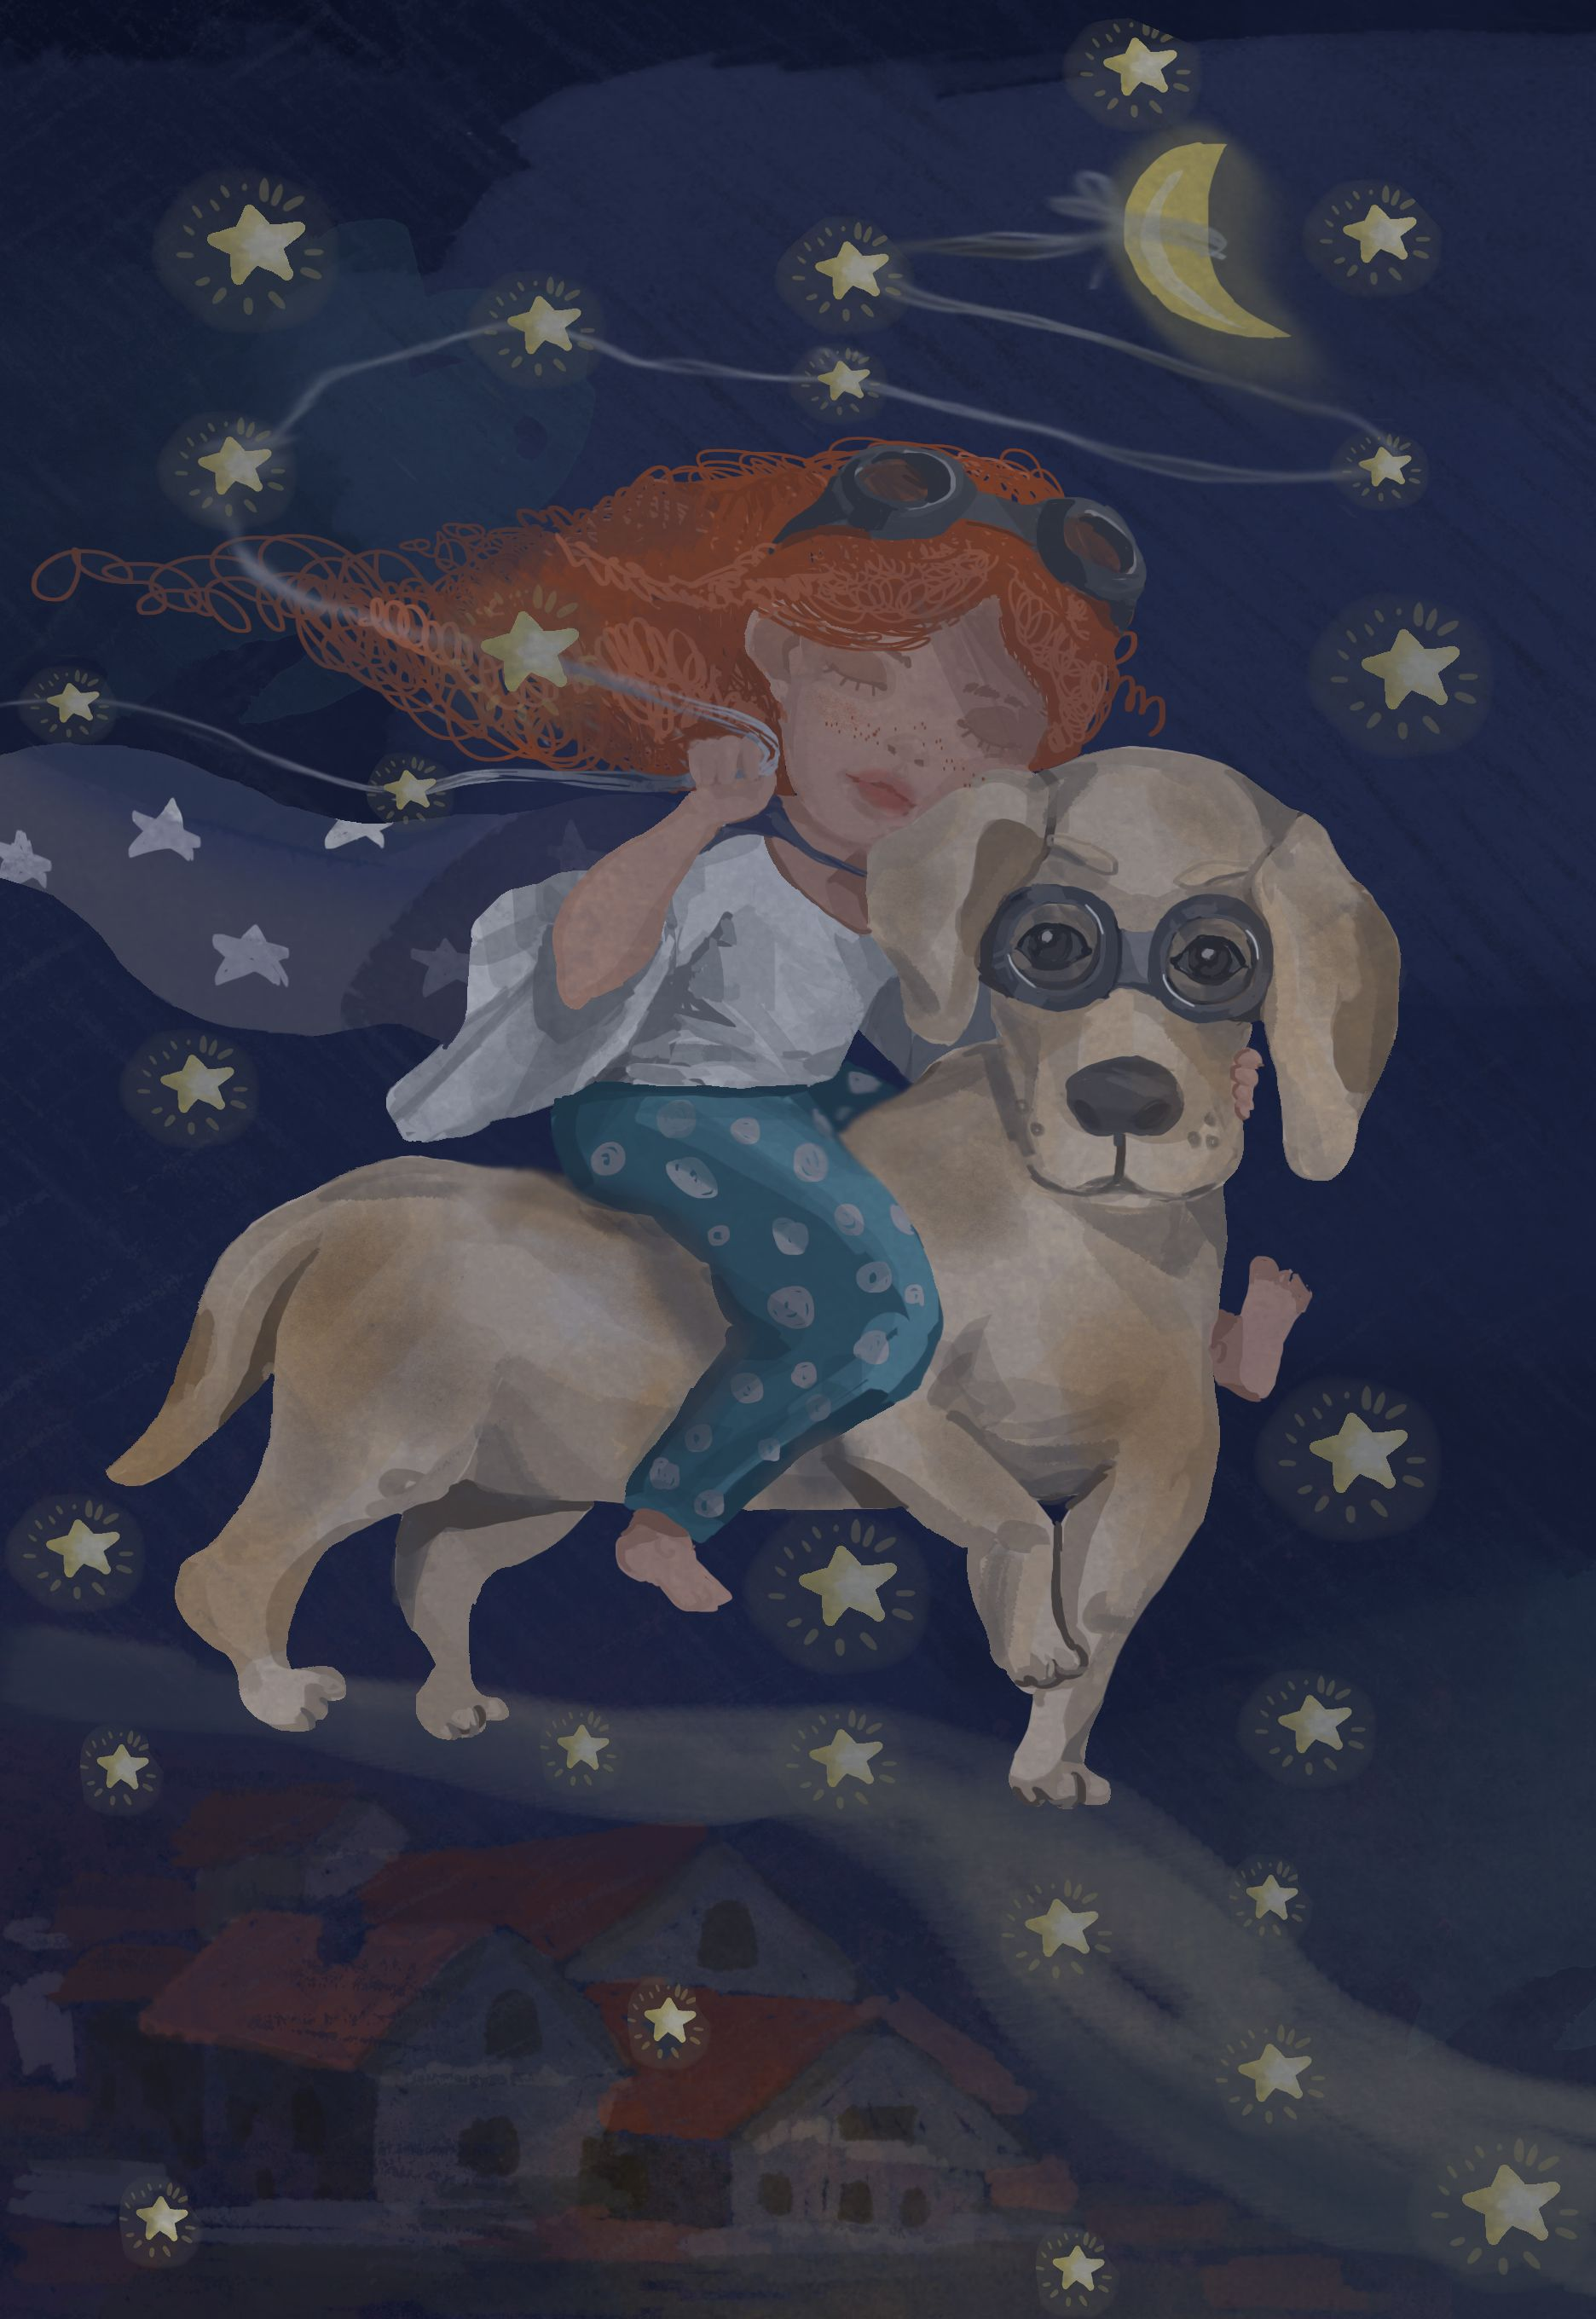 dreaming girl with her friend big dog.